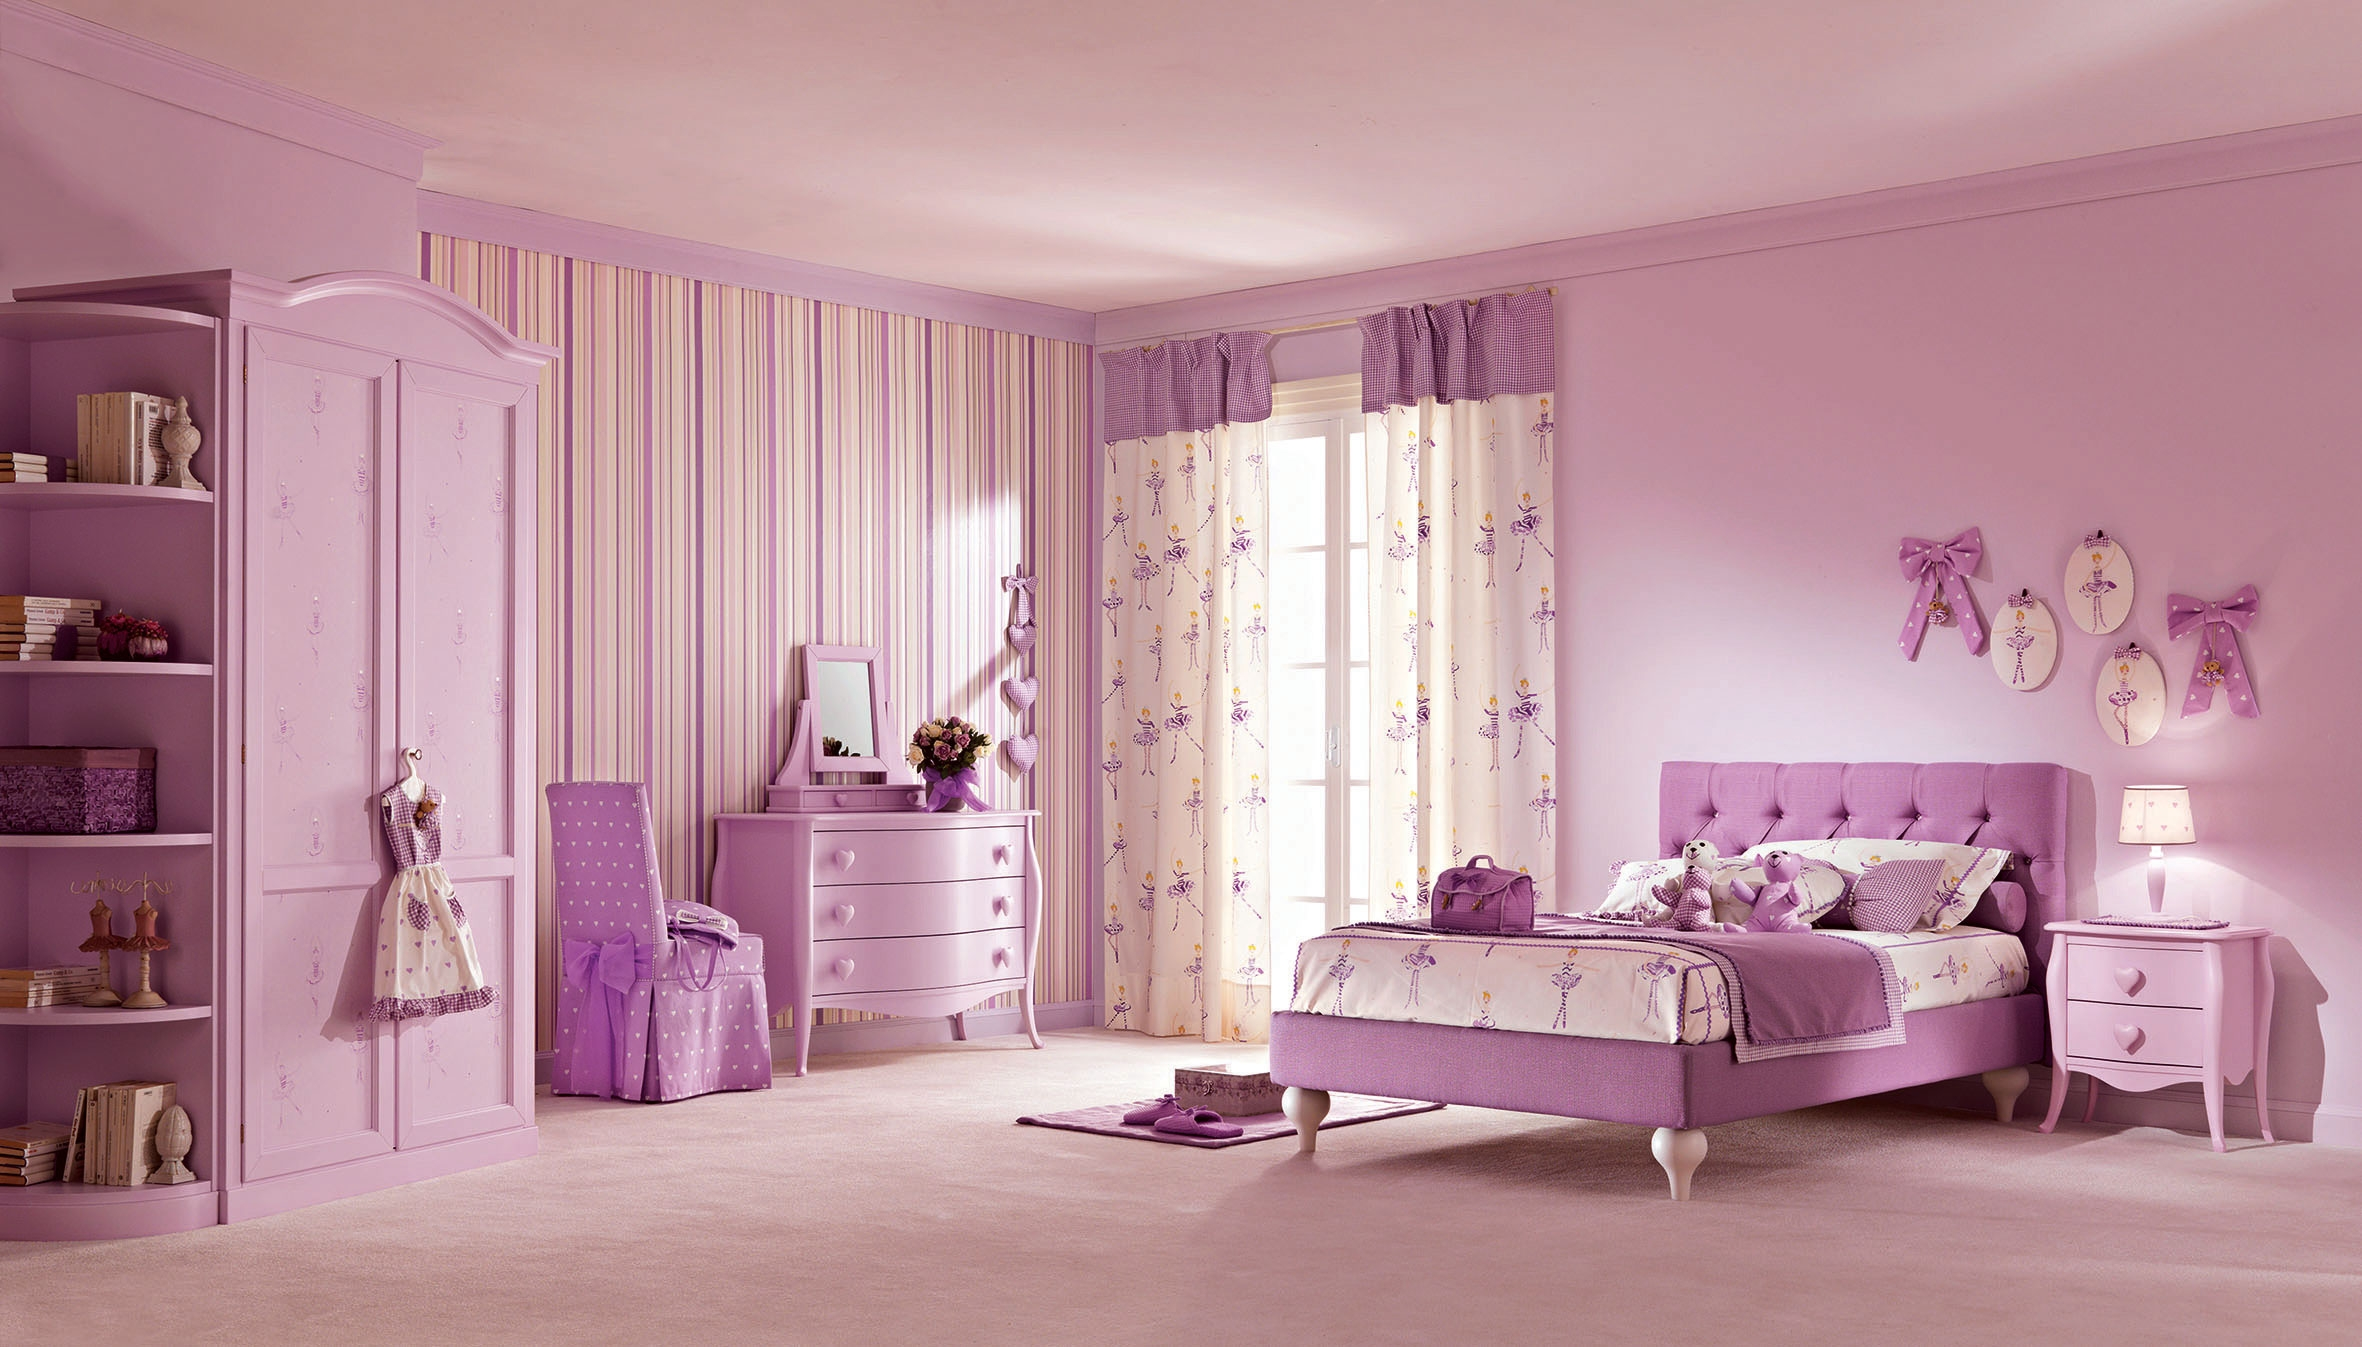 Lit Princesse Baldaquin Lit Baldaquin Fillette Beautiful Chambre Fille But